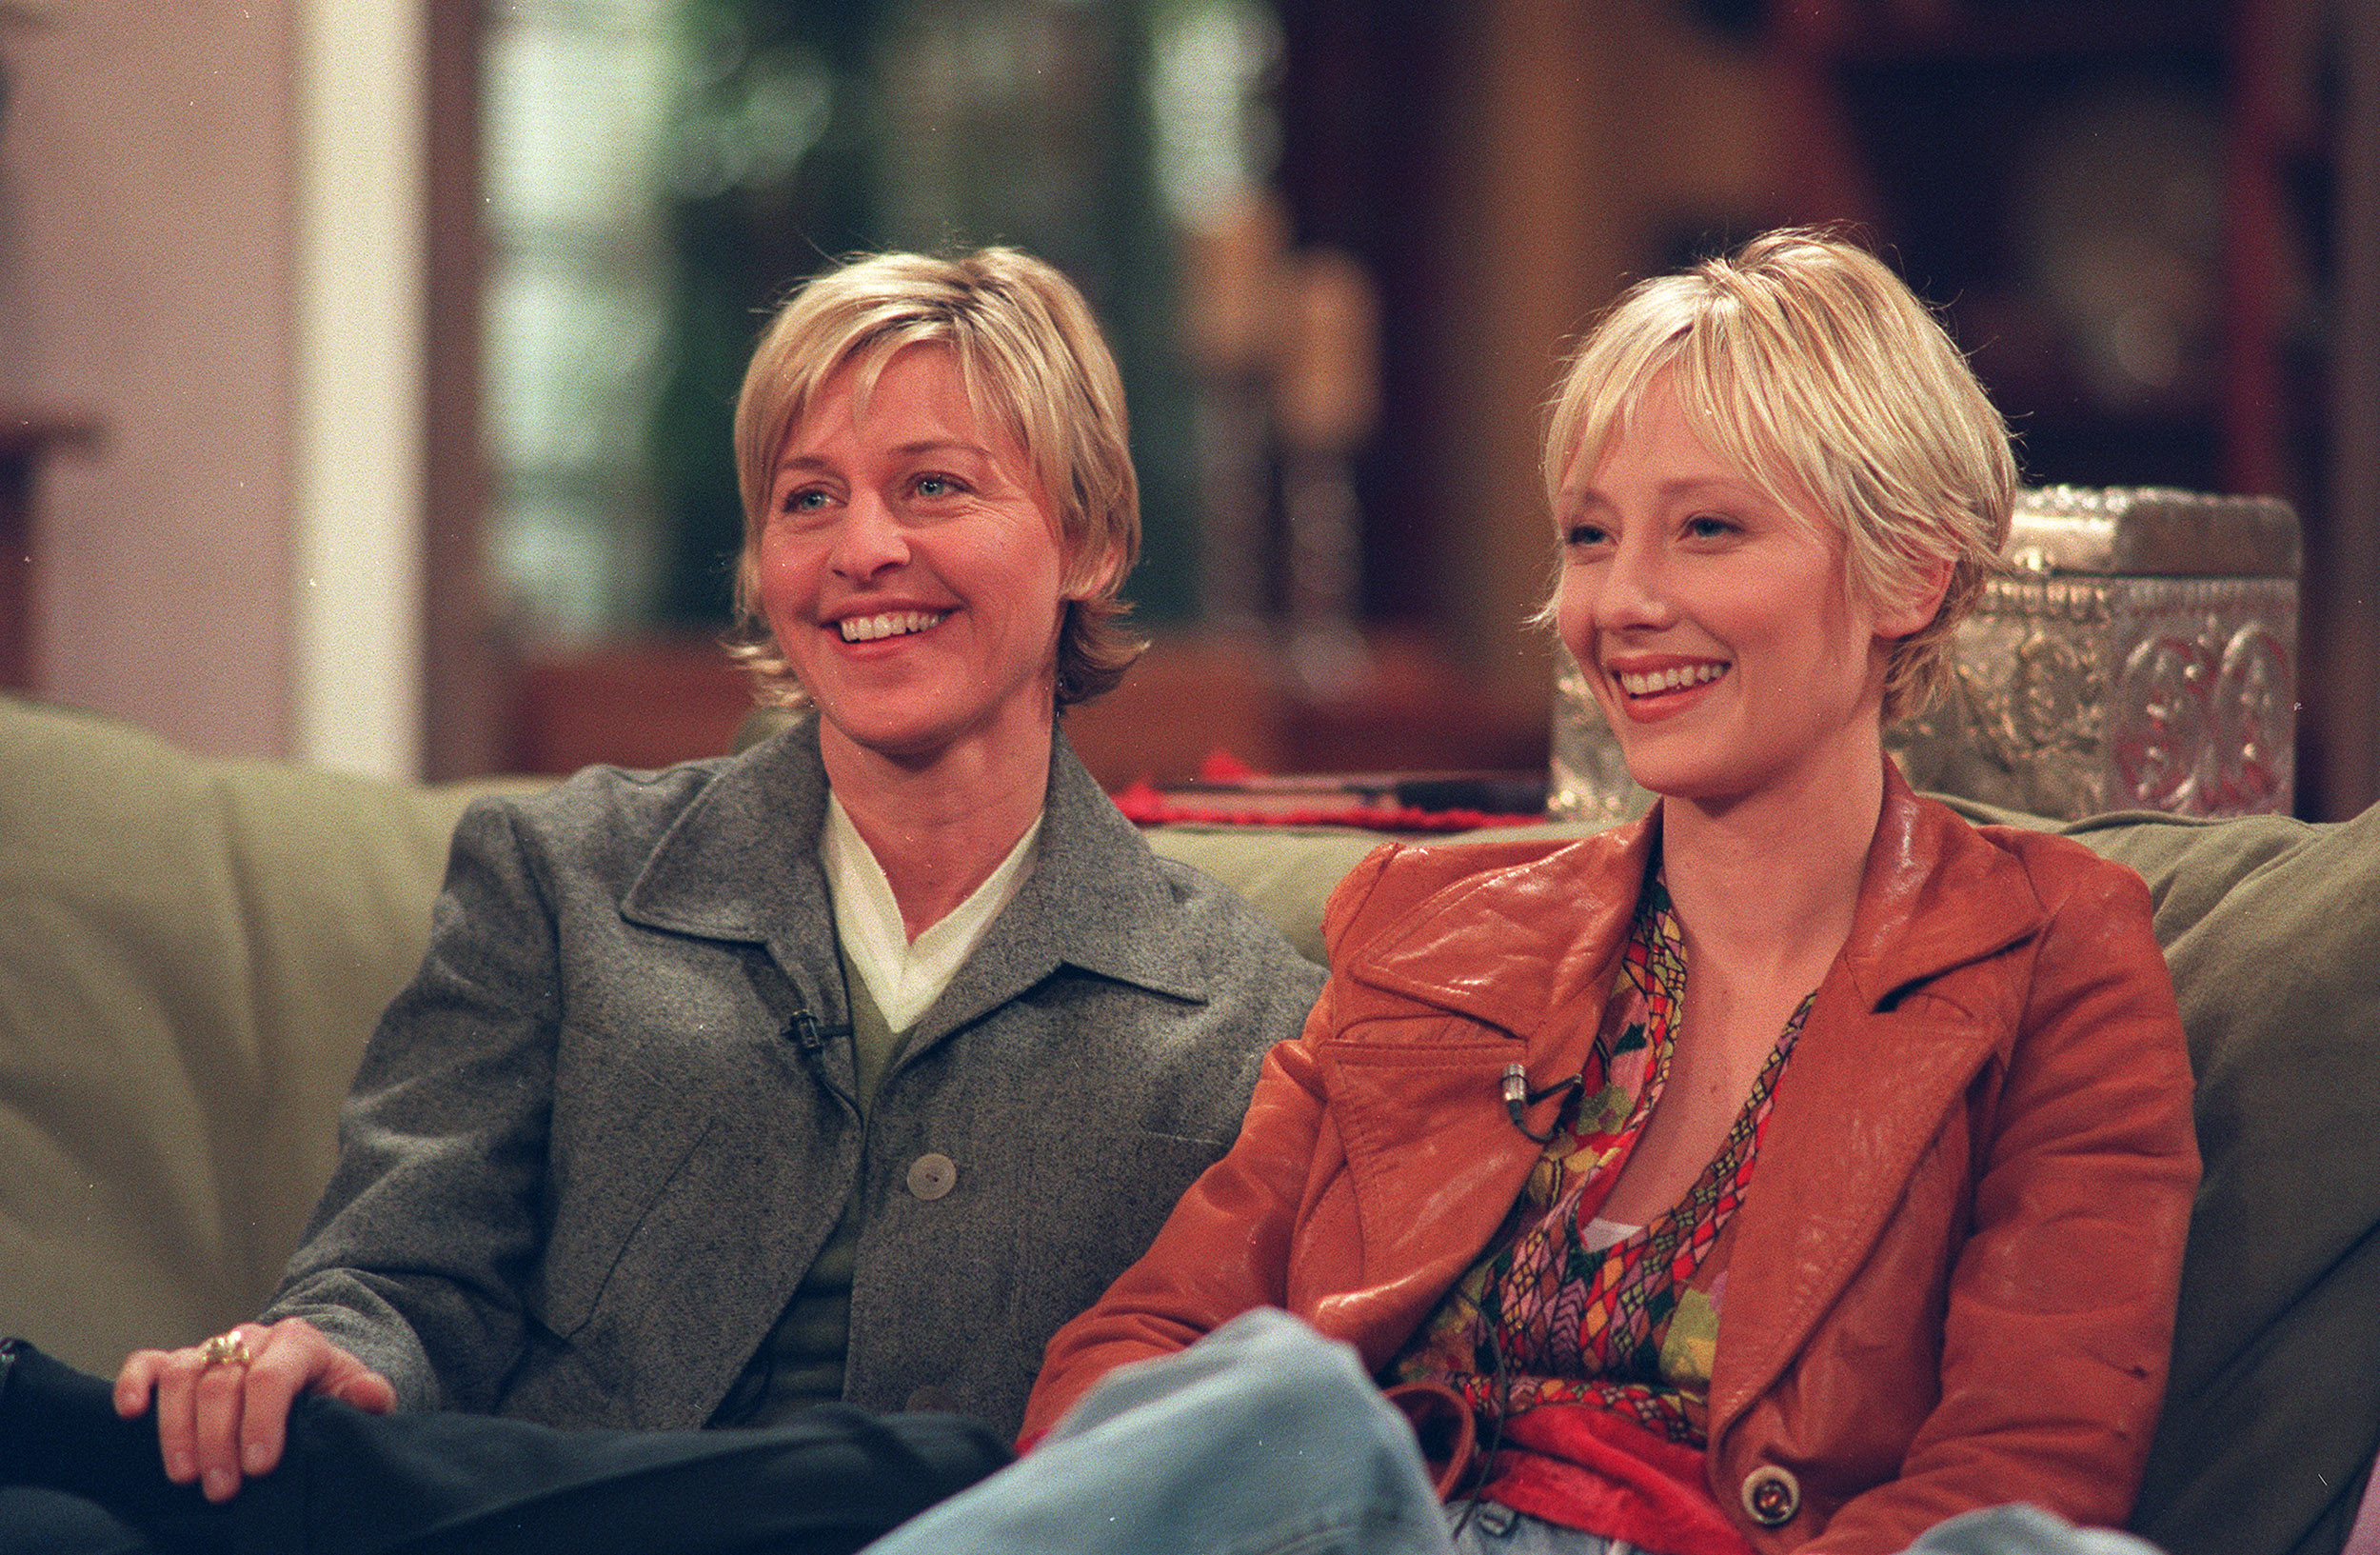 Is dating who anne now heche The Real